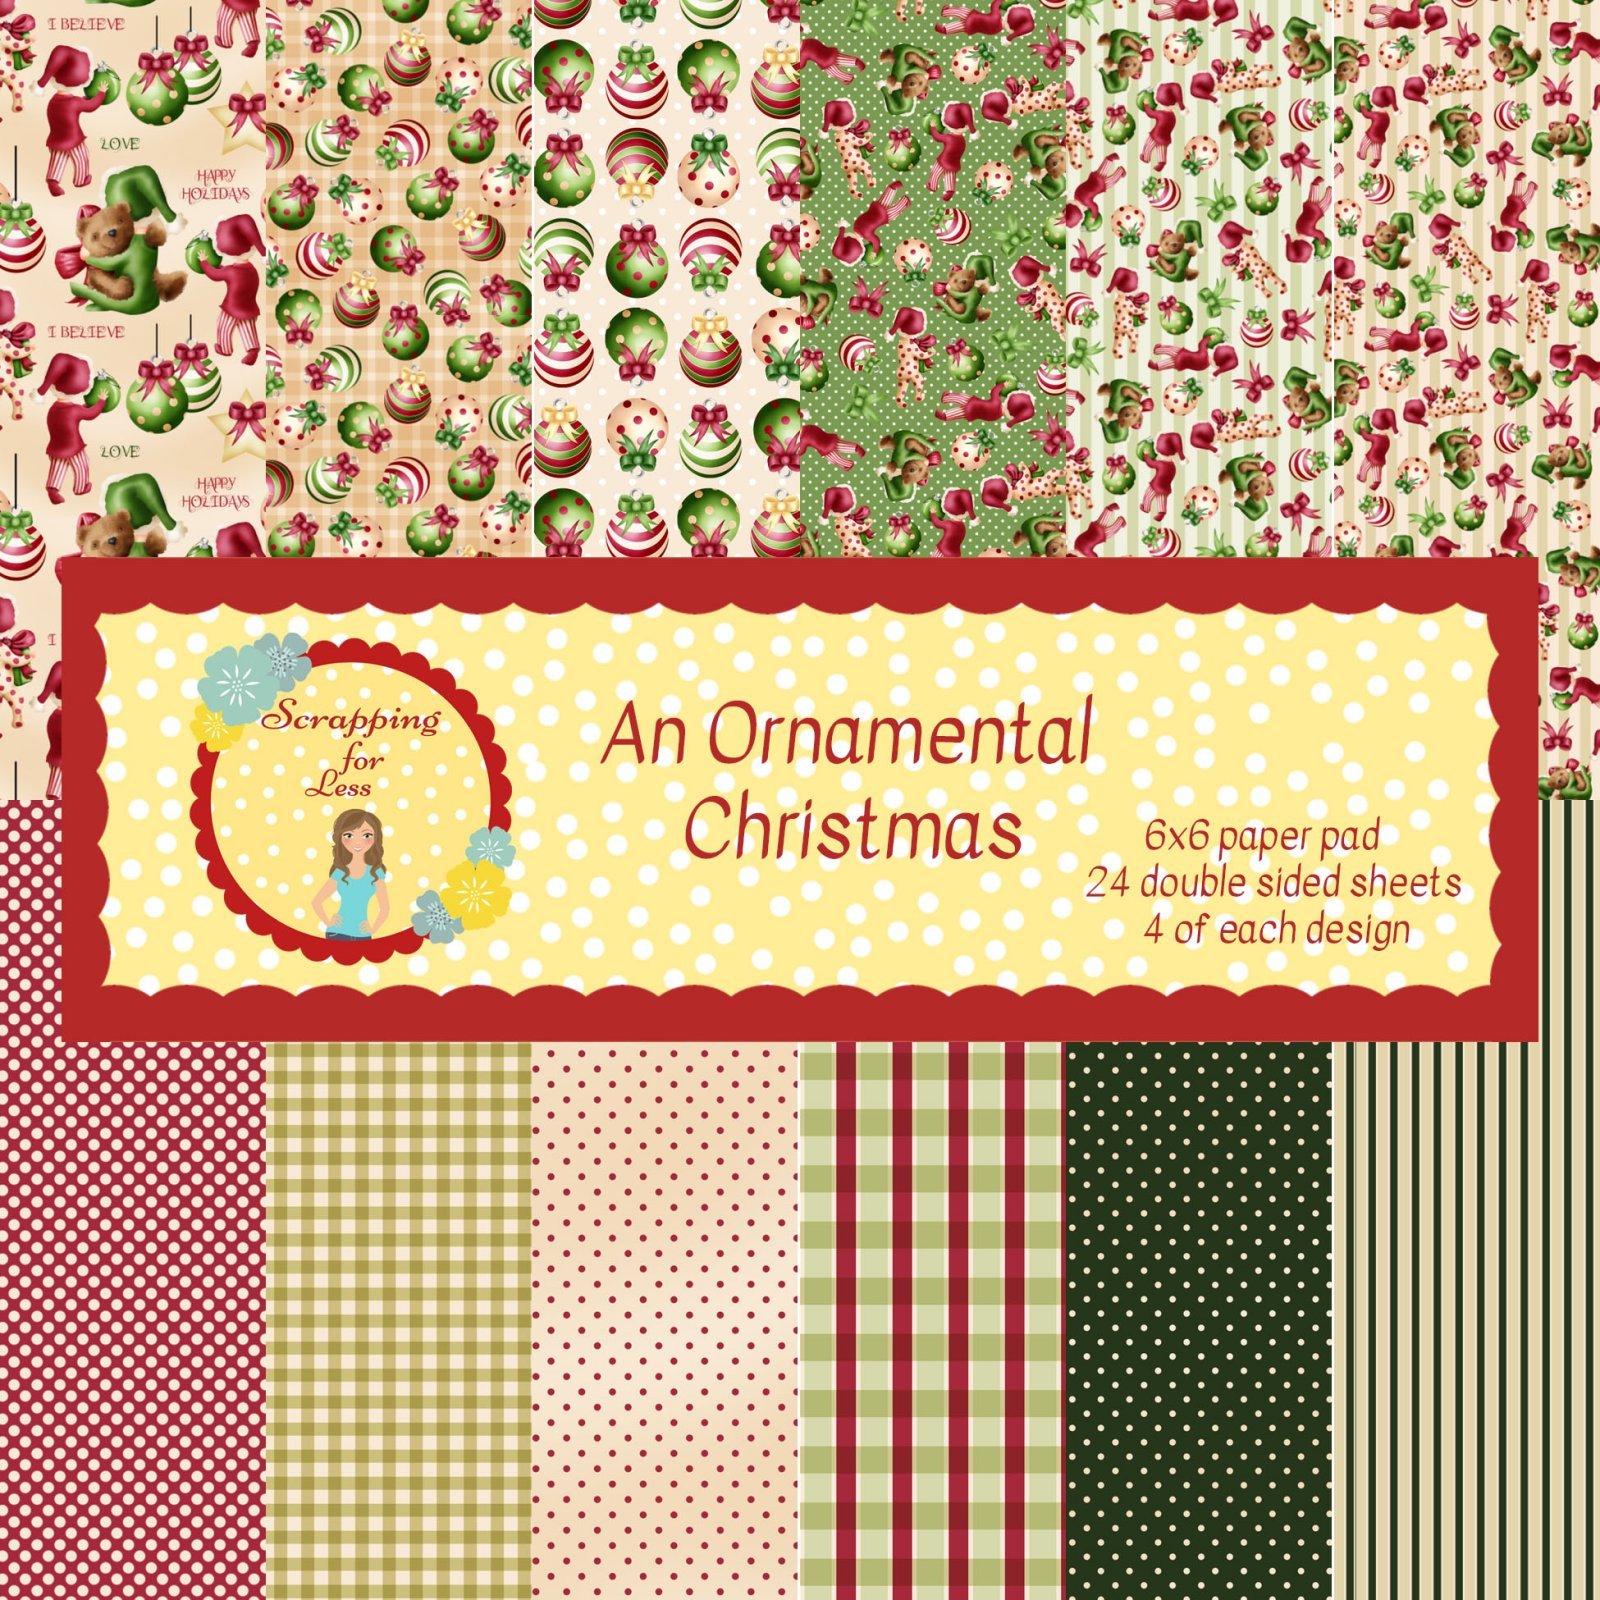 Scrapping for Less An Ornamental Christmas 6x6 Paper Pad